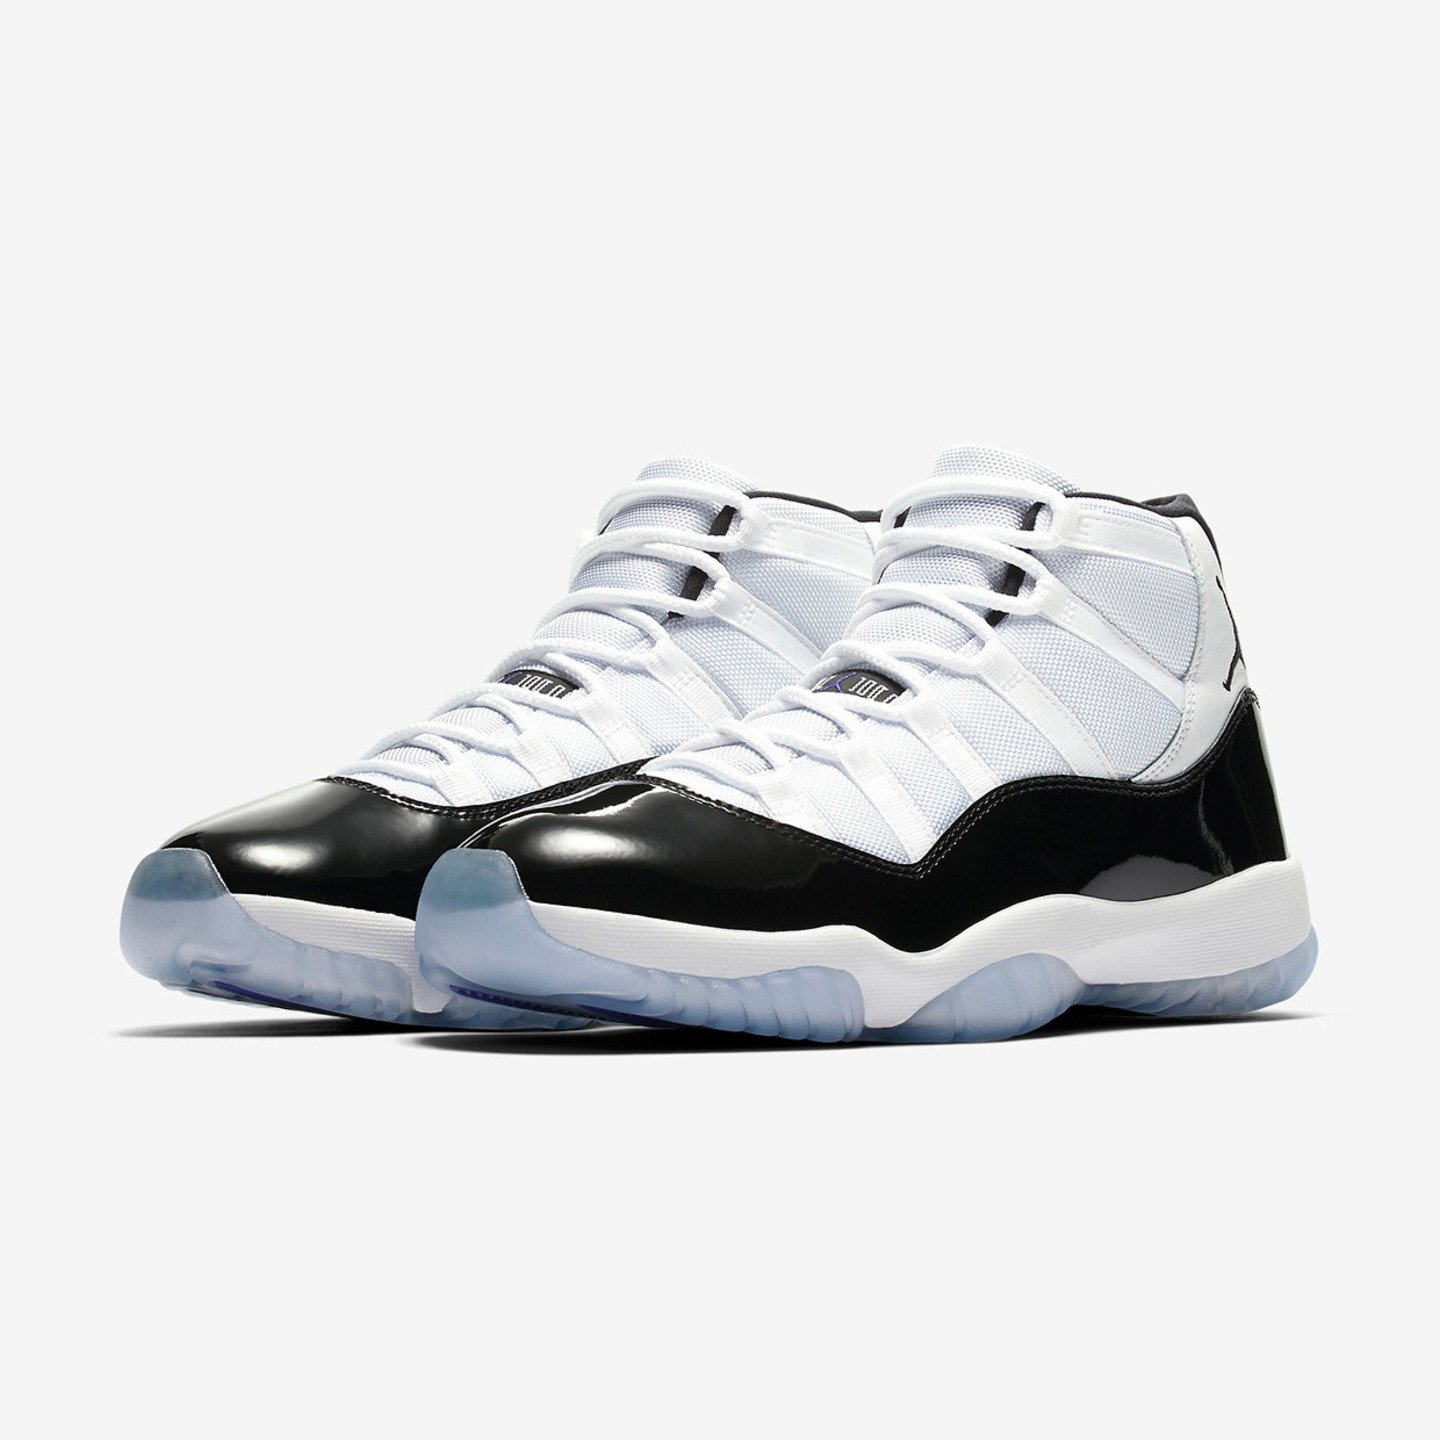 Nike Air Jordan 11 Retro GS 'Concord' White / Black / Dark Concord 378038-100